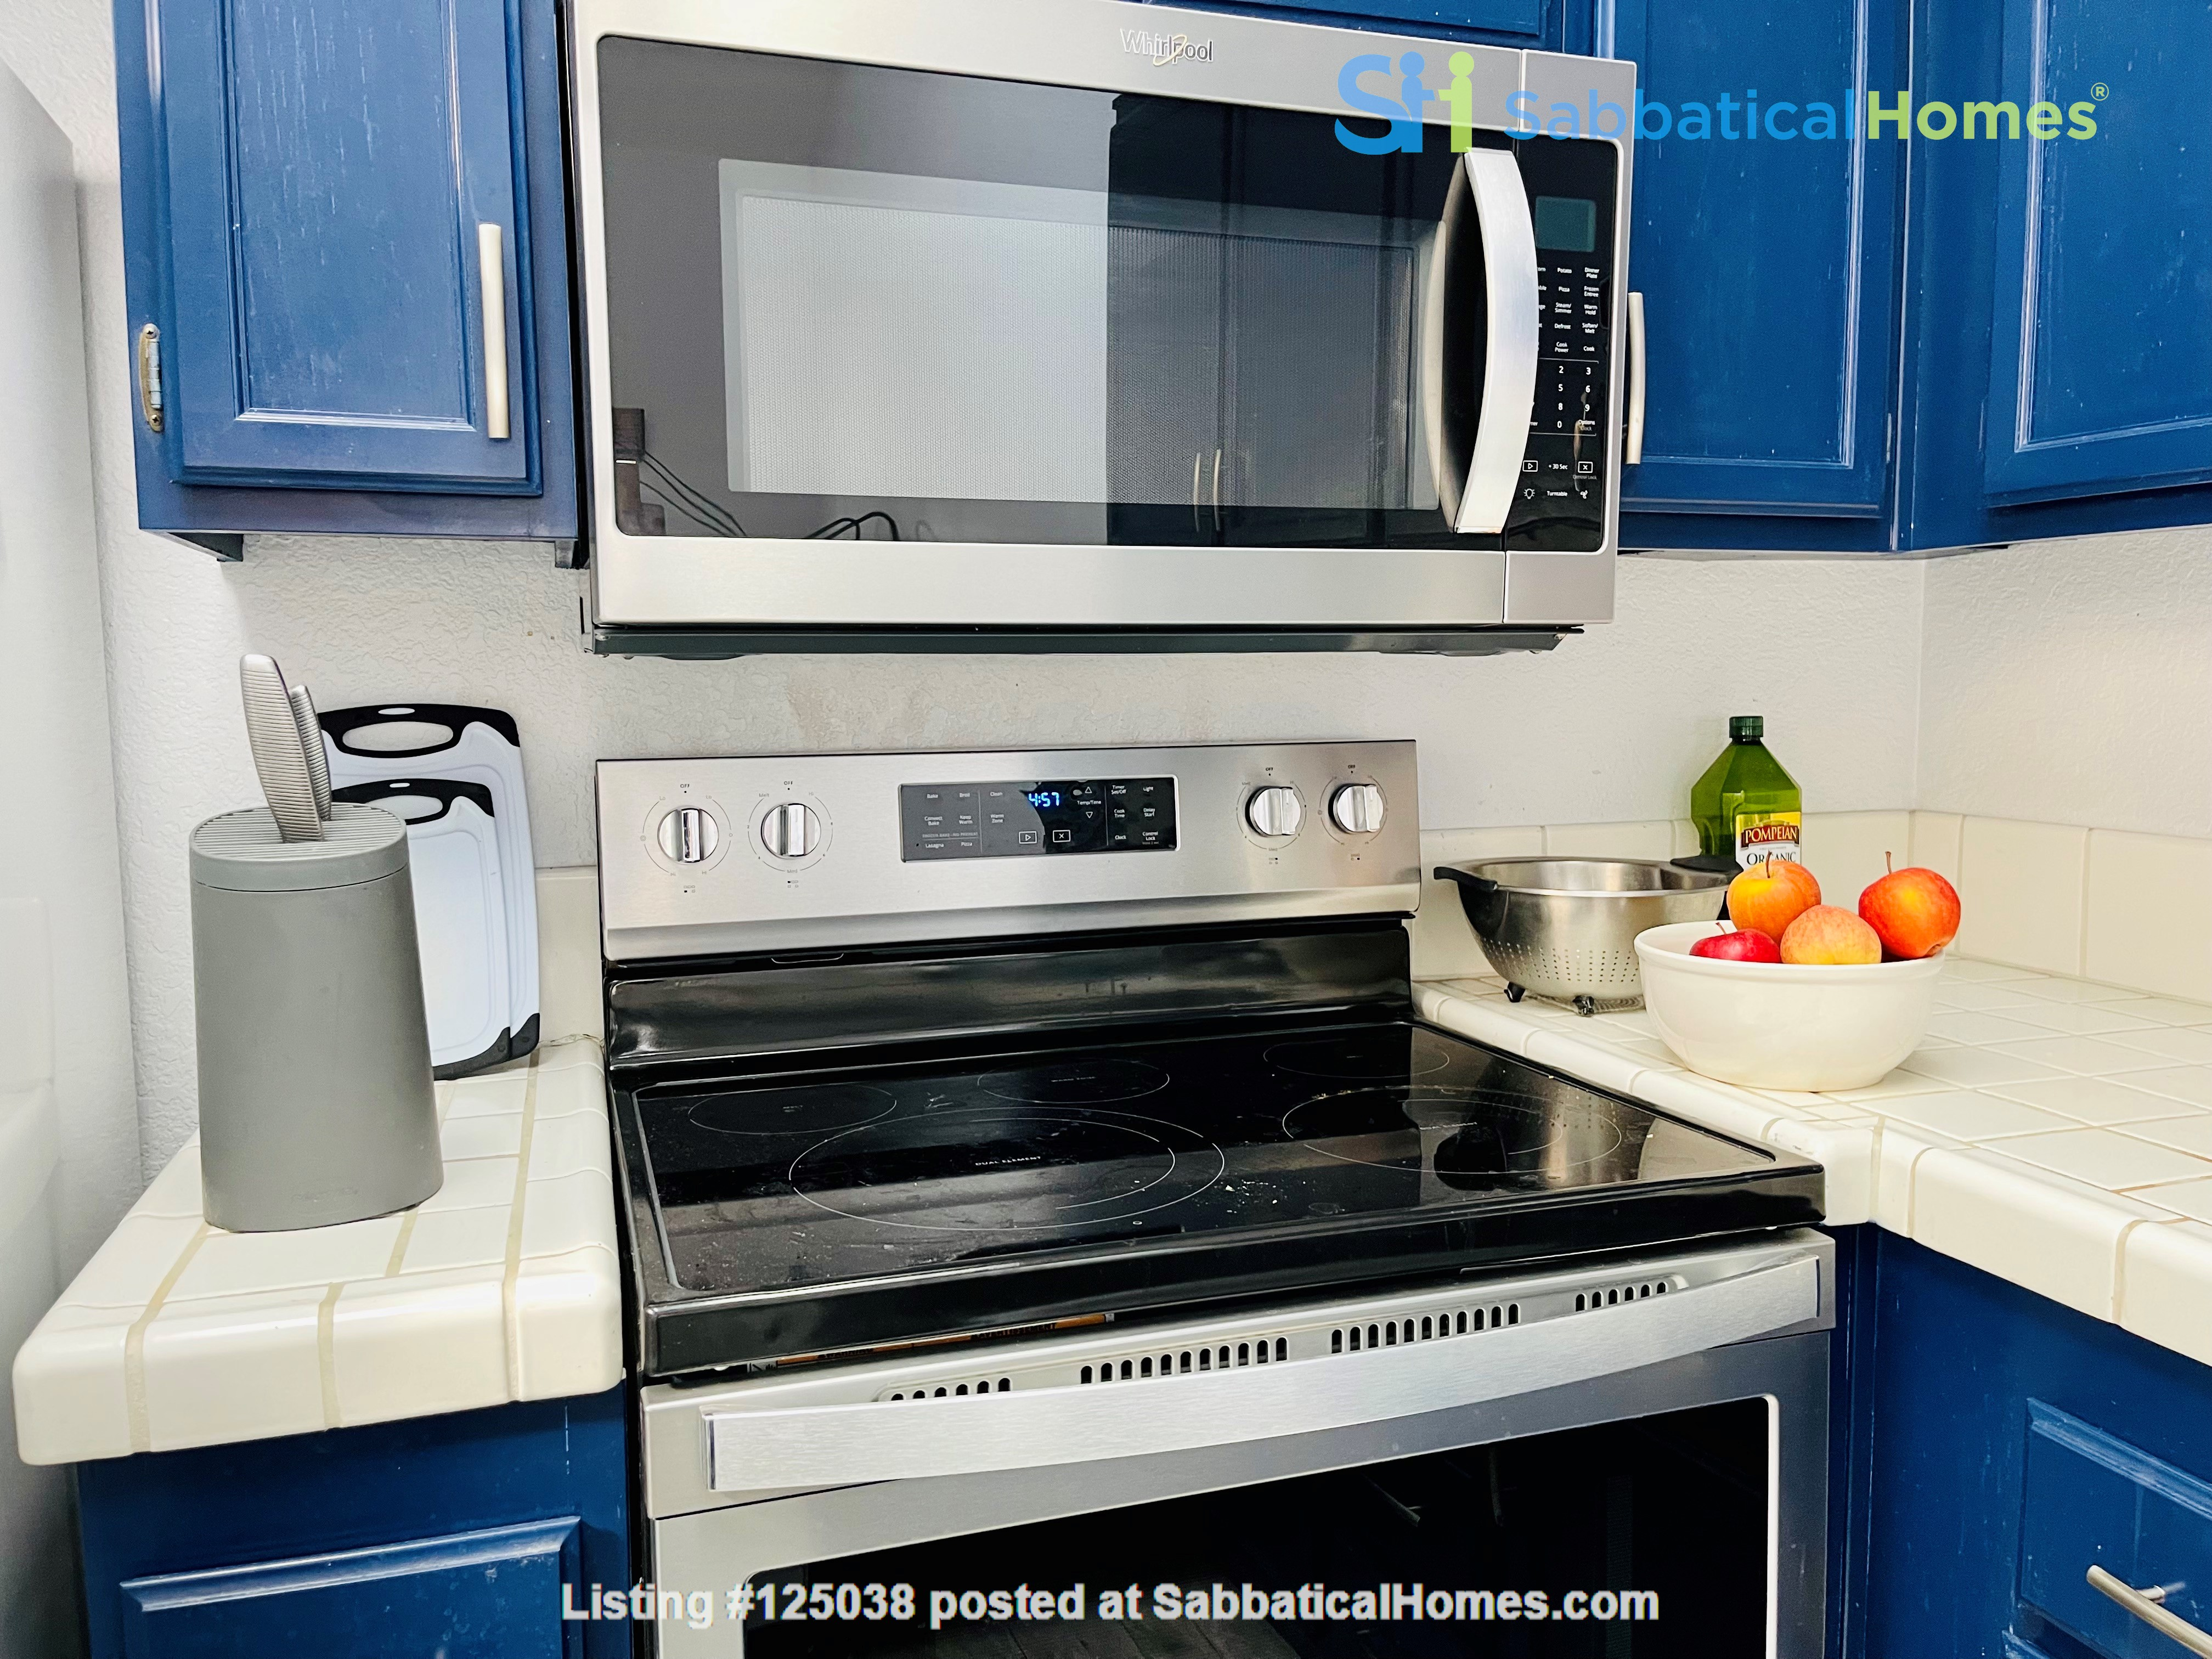 Spacious, furnished townhouse ideal for UCSD, Scripps, Salk, Torrey Pines! Home Rental in San Diego 4